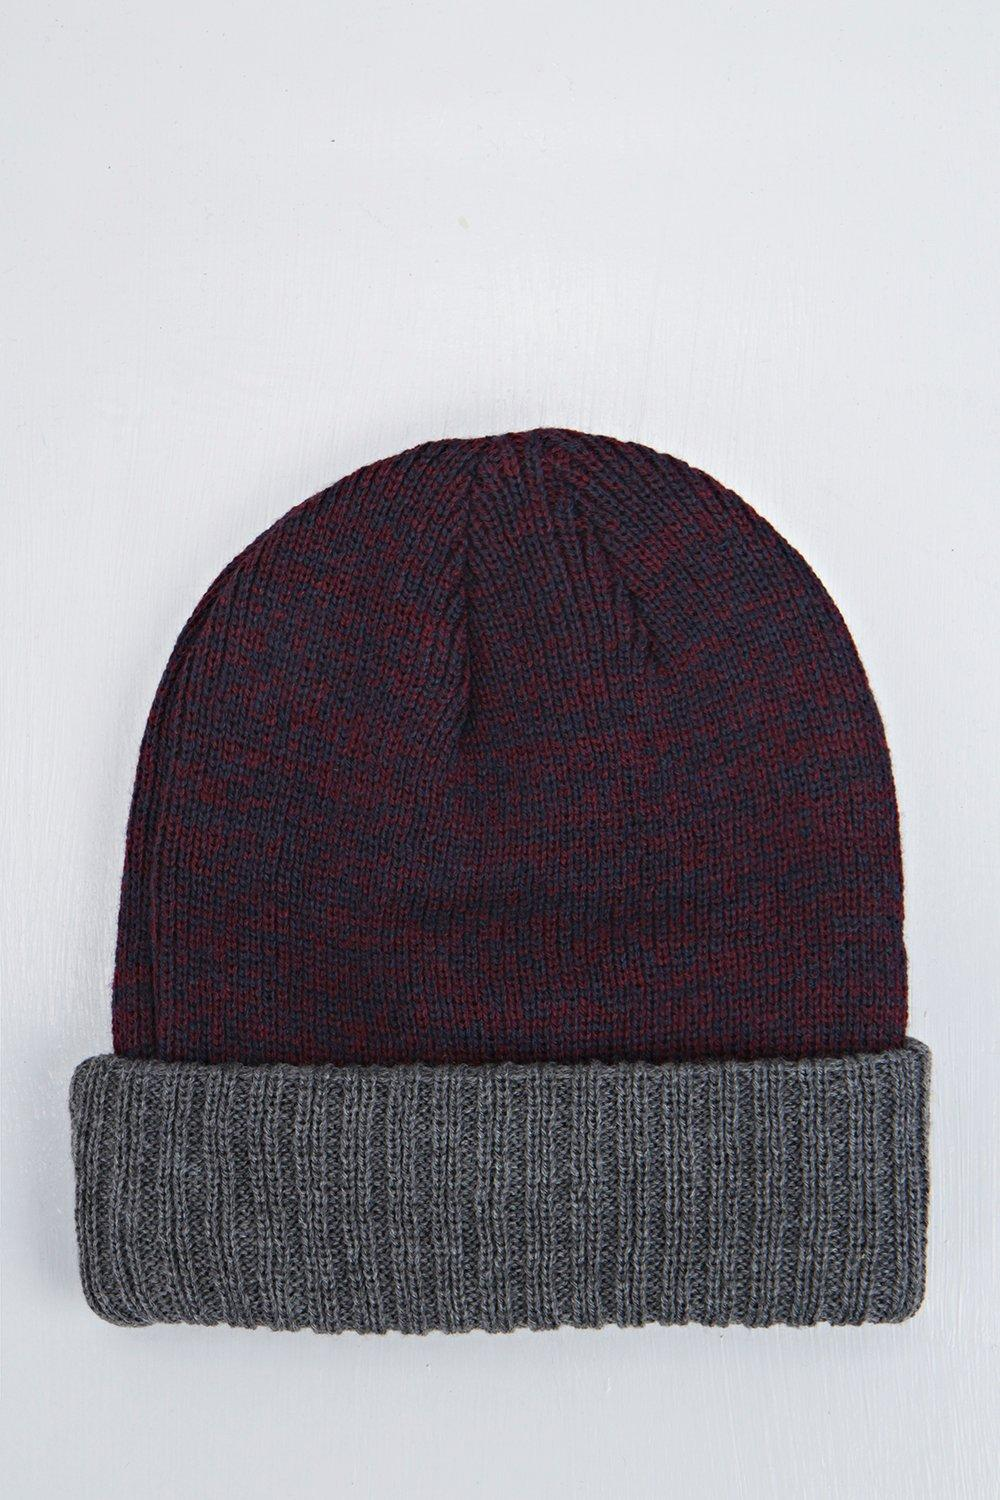 Marl Beanie with Contrast Turn Up